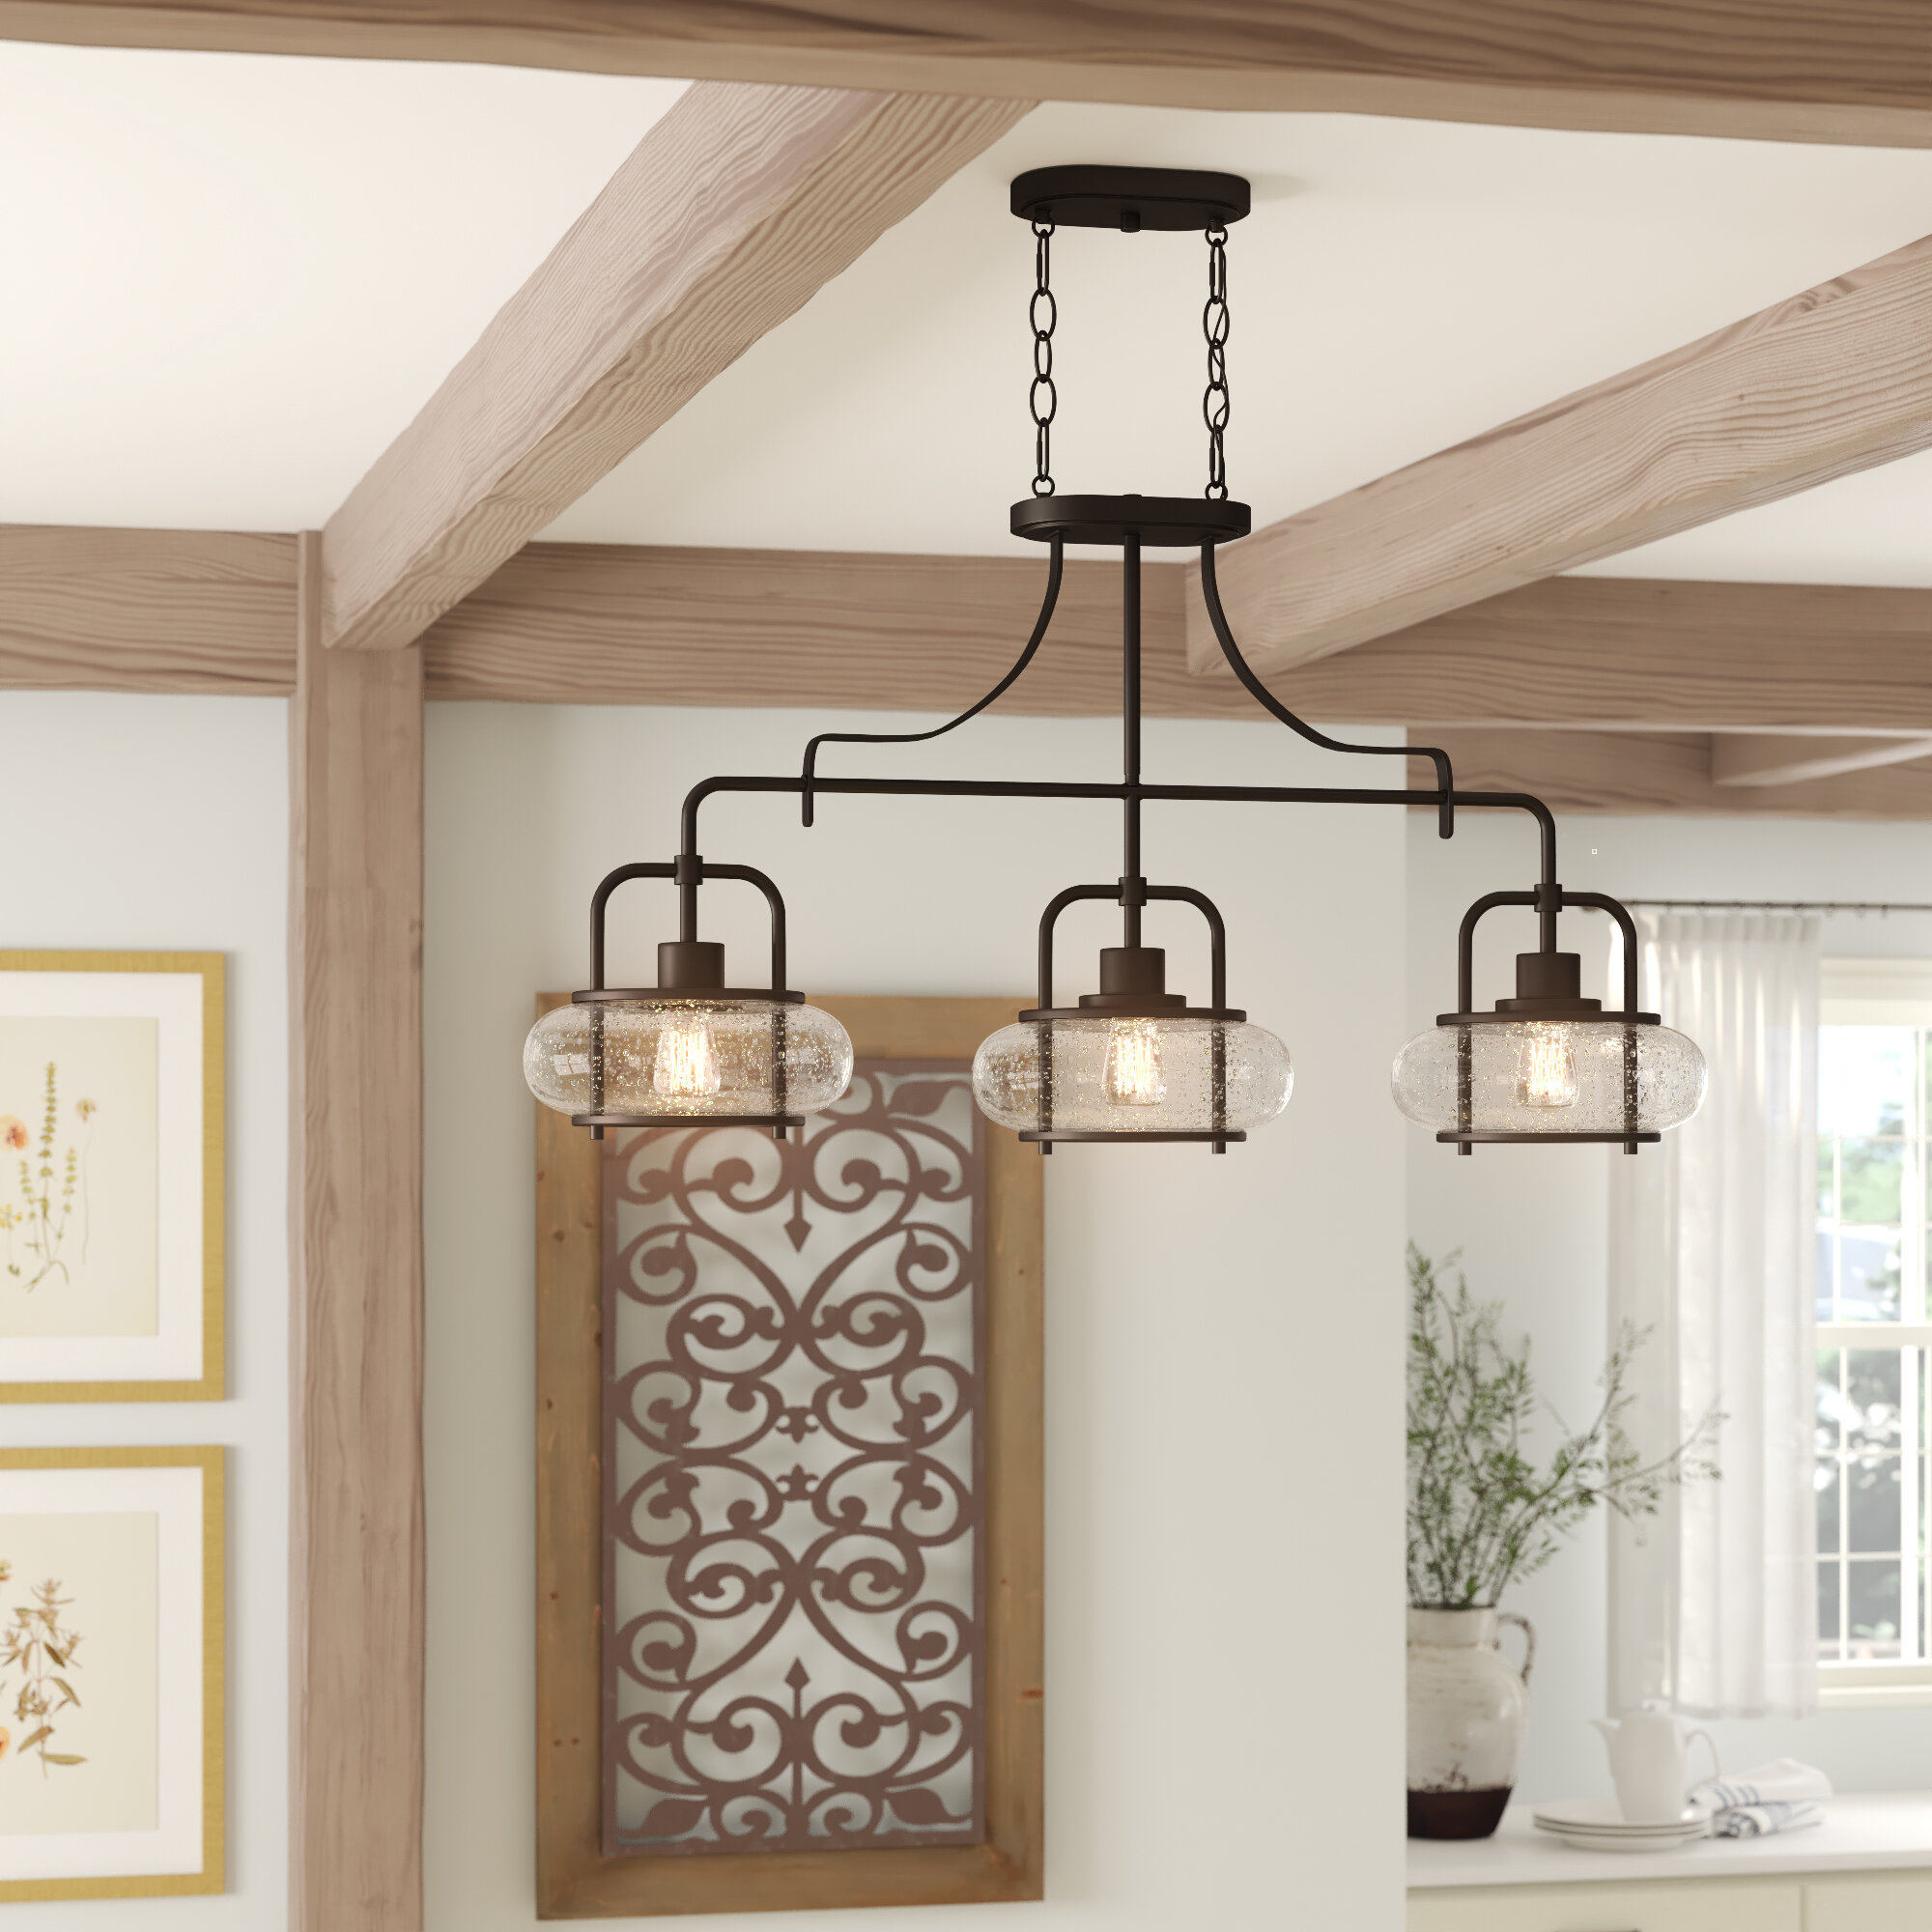 Beachcrest Home Braxton 3 Light Kitchen Island Linear Pendant For Ariel 3 Light Kitchen Island Dome Pendants (Image 11 of 30)